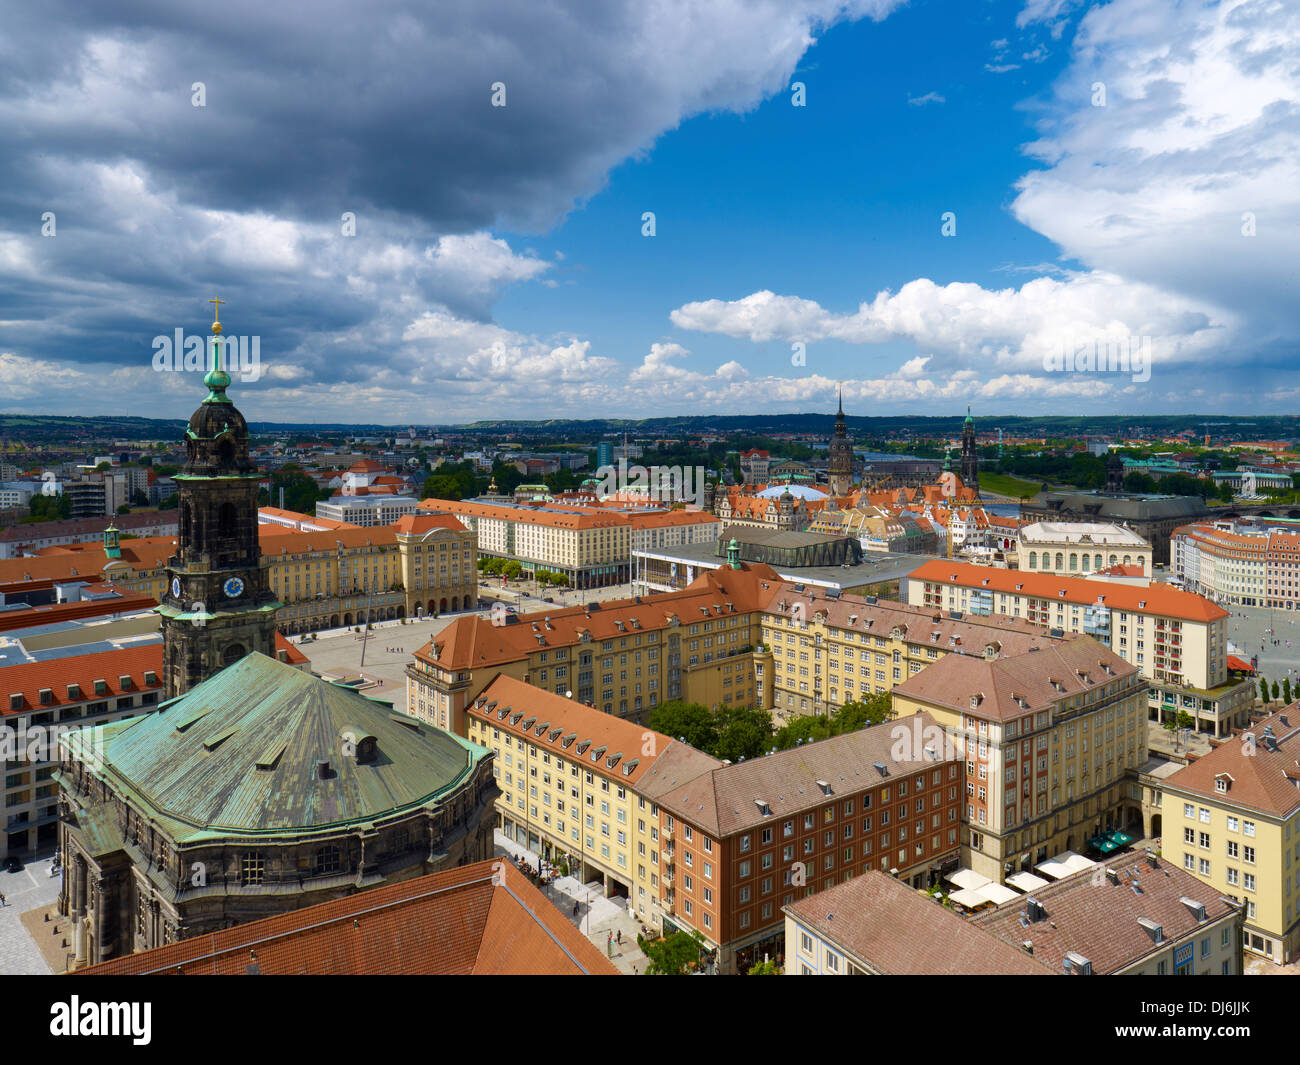 View of Dresden with Church of the Holy Cross and Altmarkt Square, Saxony, Germany - Stock Image